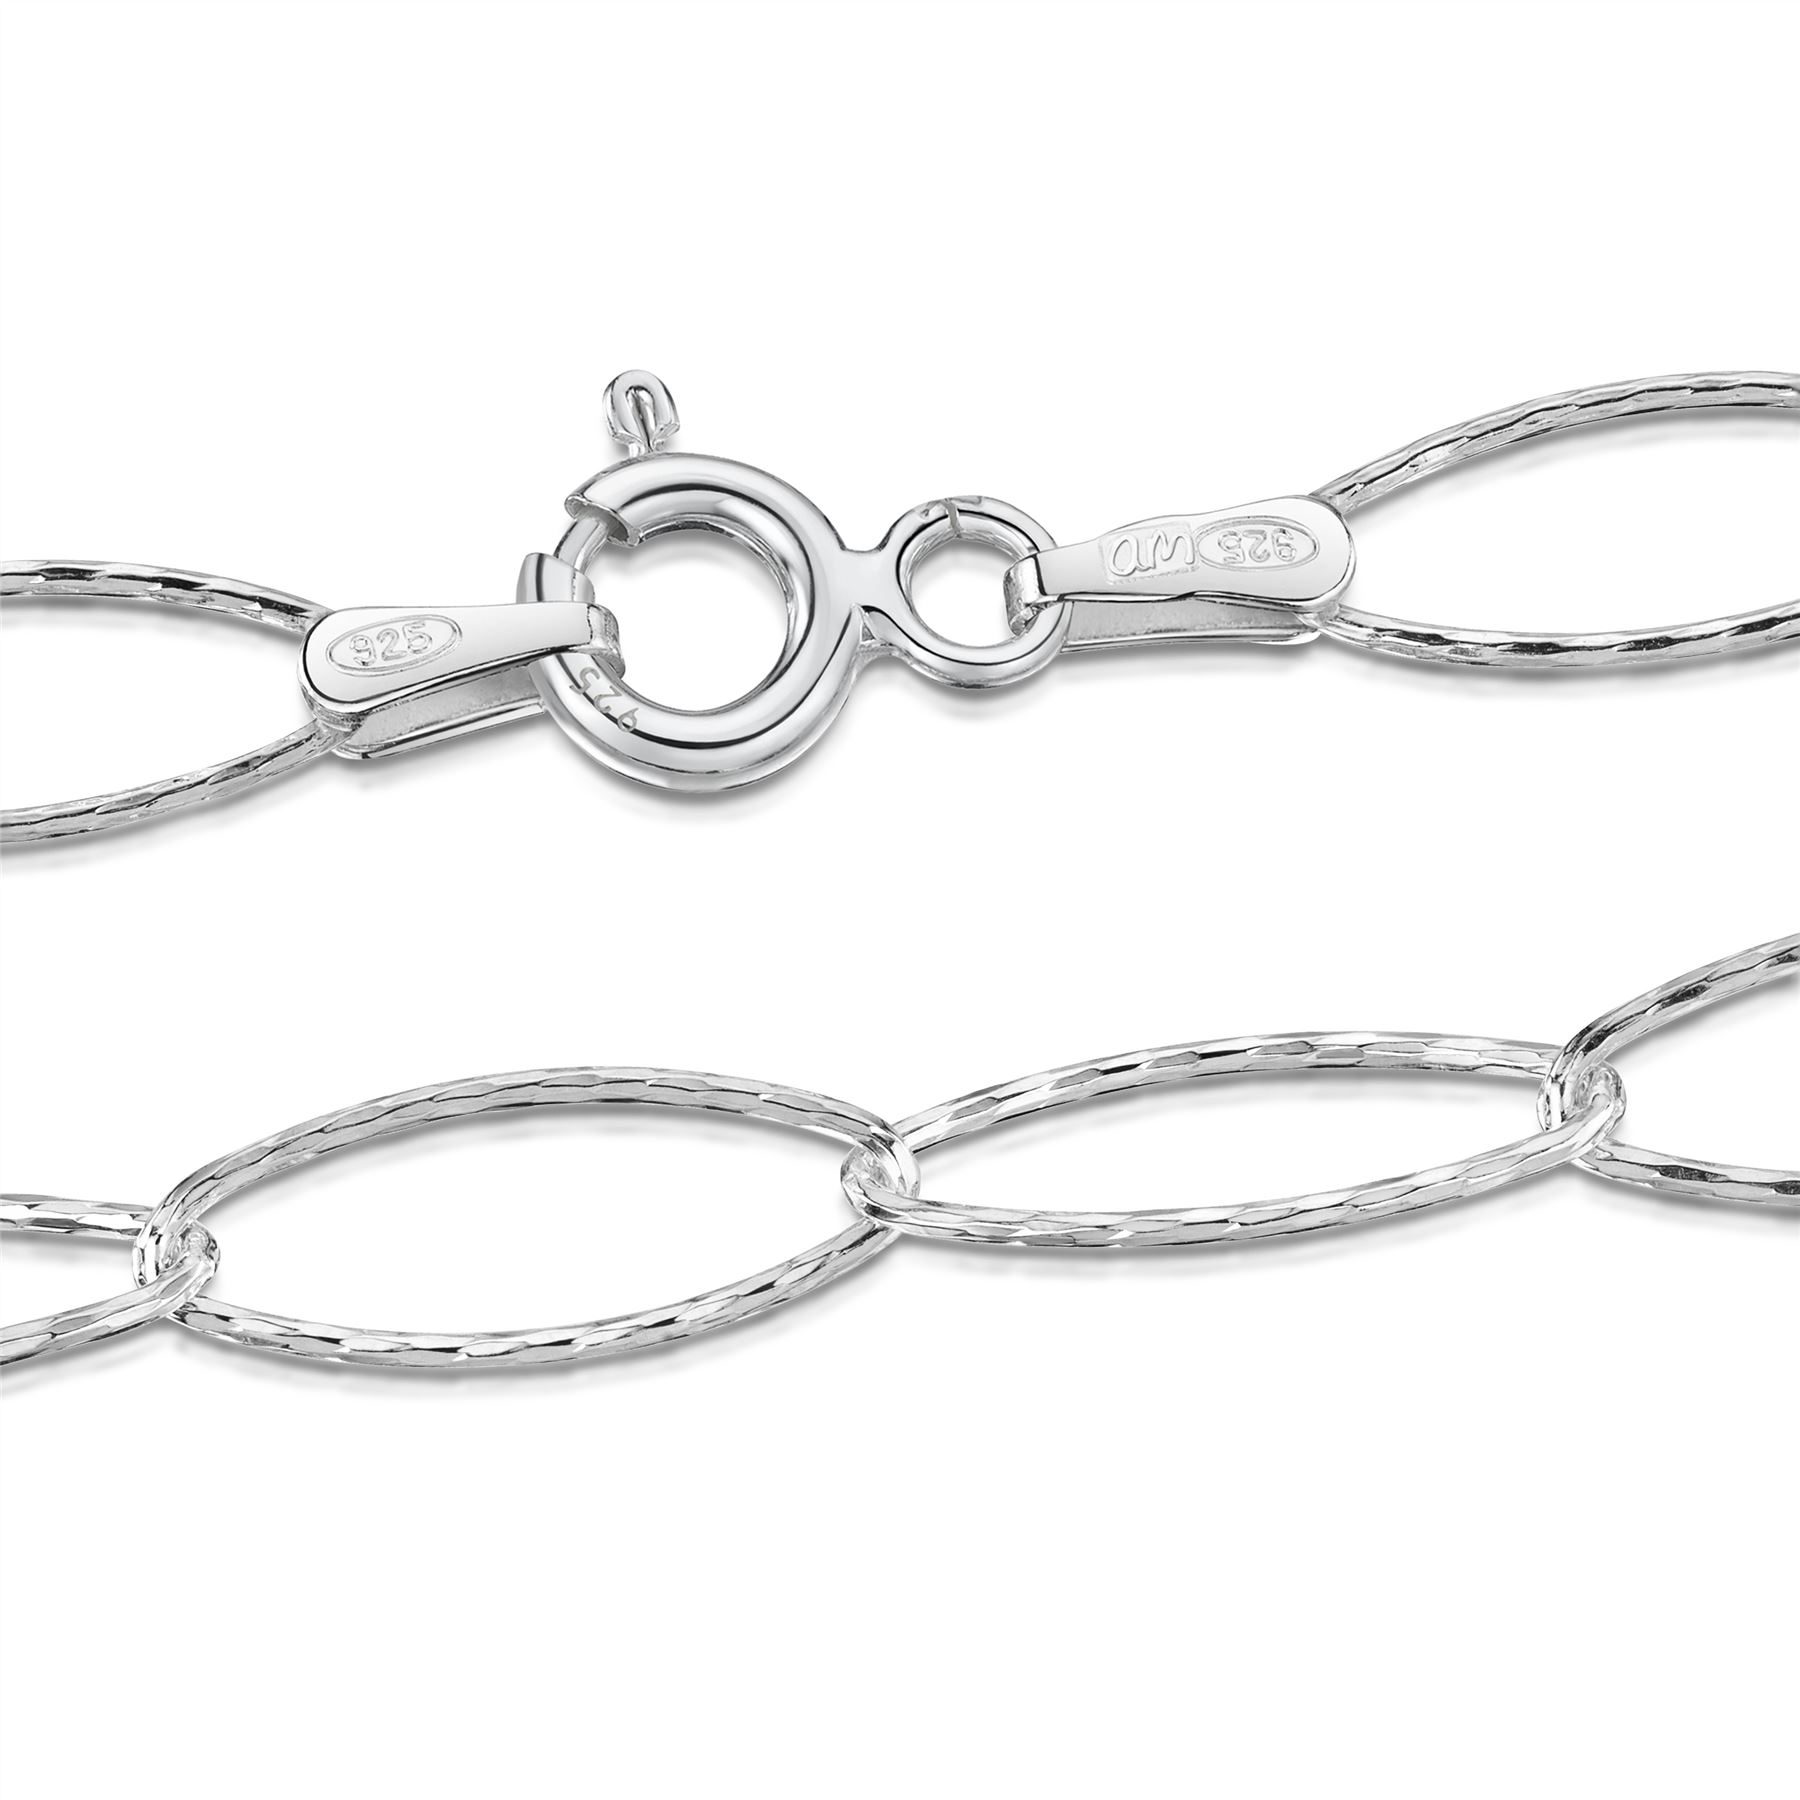 Amberta-Jewelry-Genuine-925-Sterling-Silver-Bracelet-Bangle-Chain-Made-in-Italy thumbnail 108